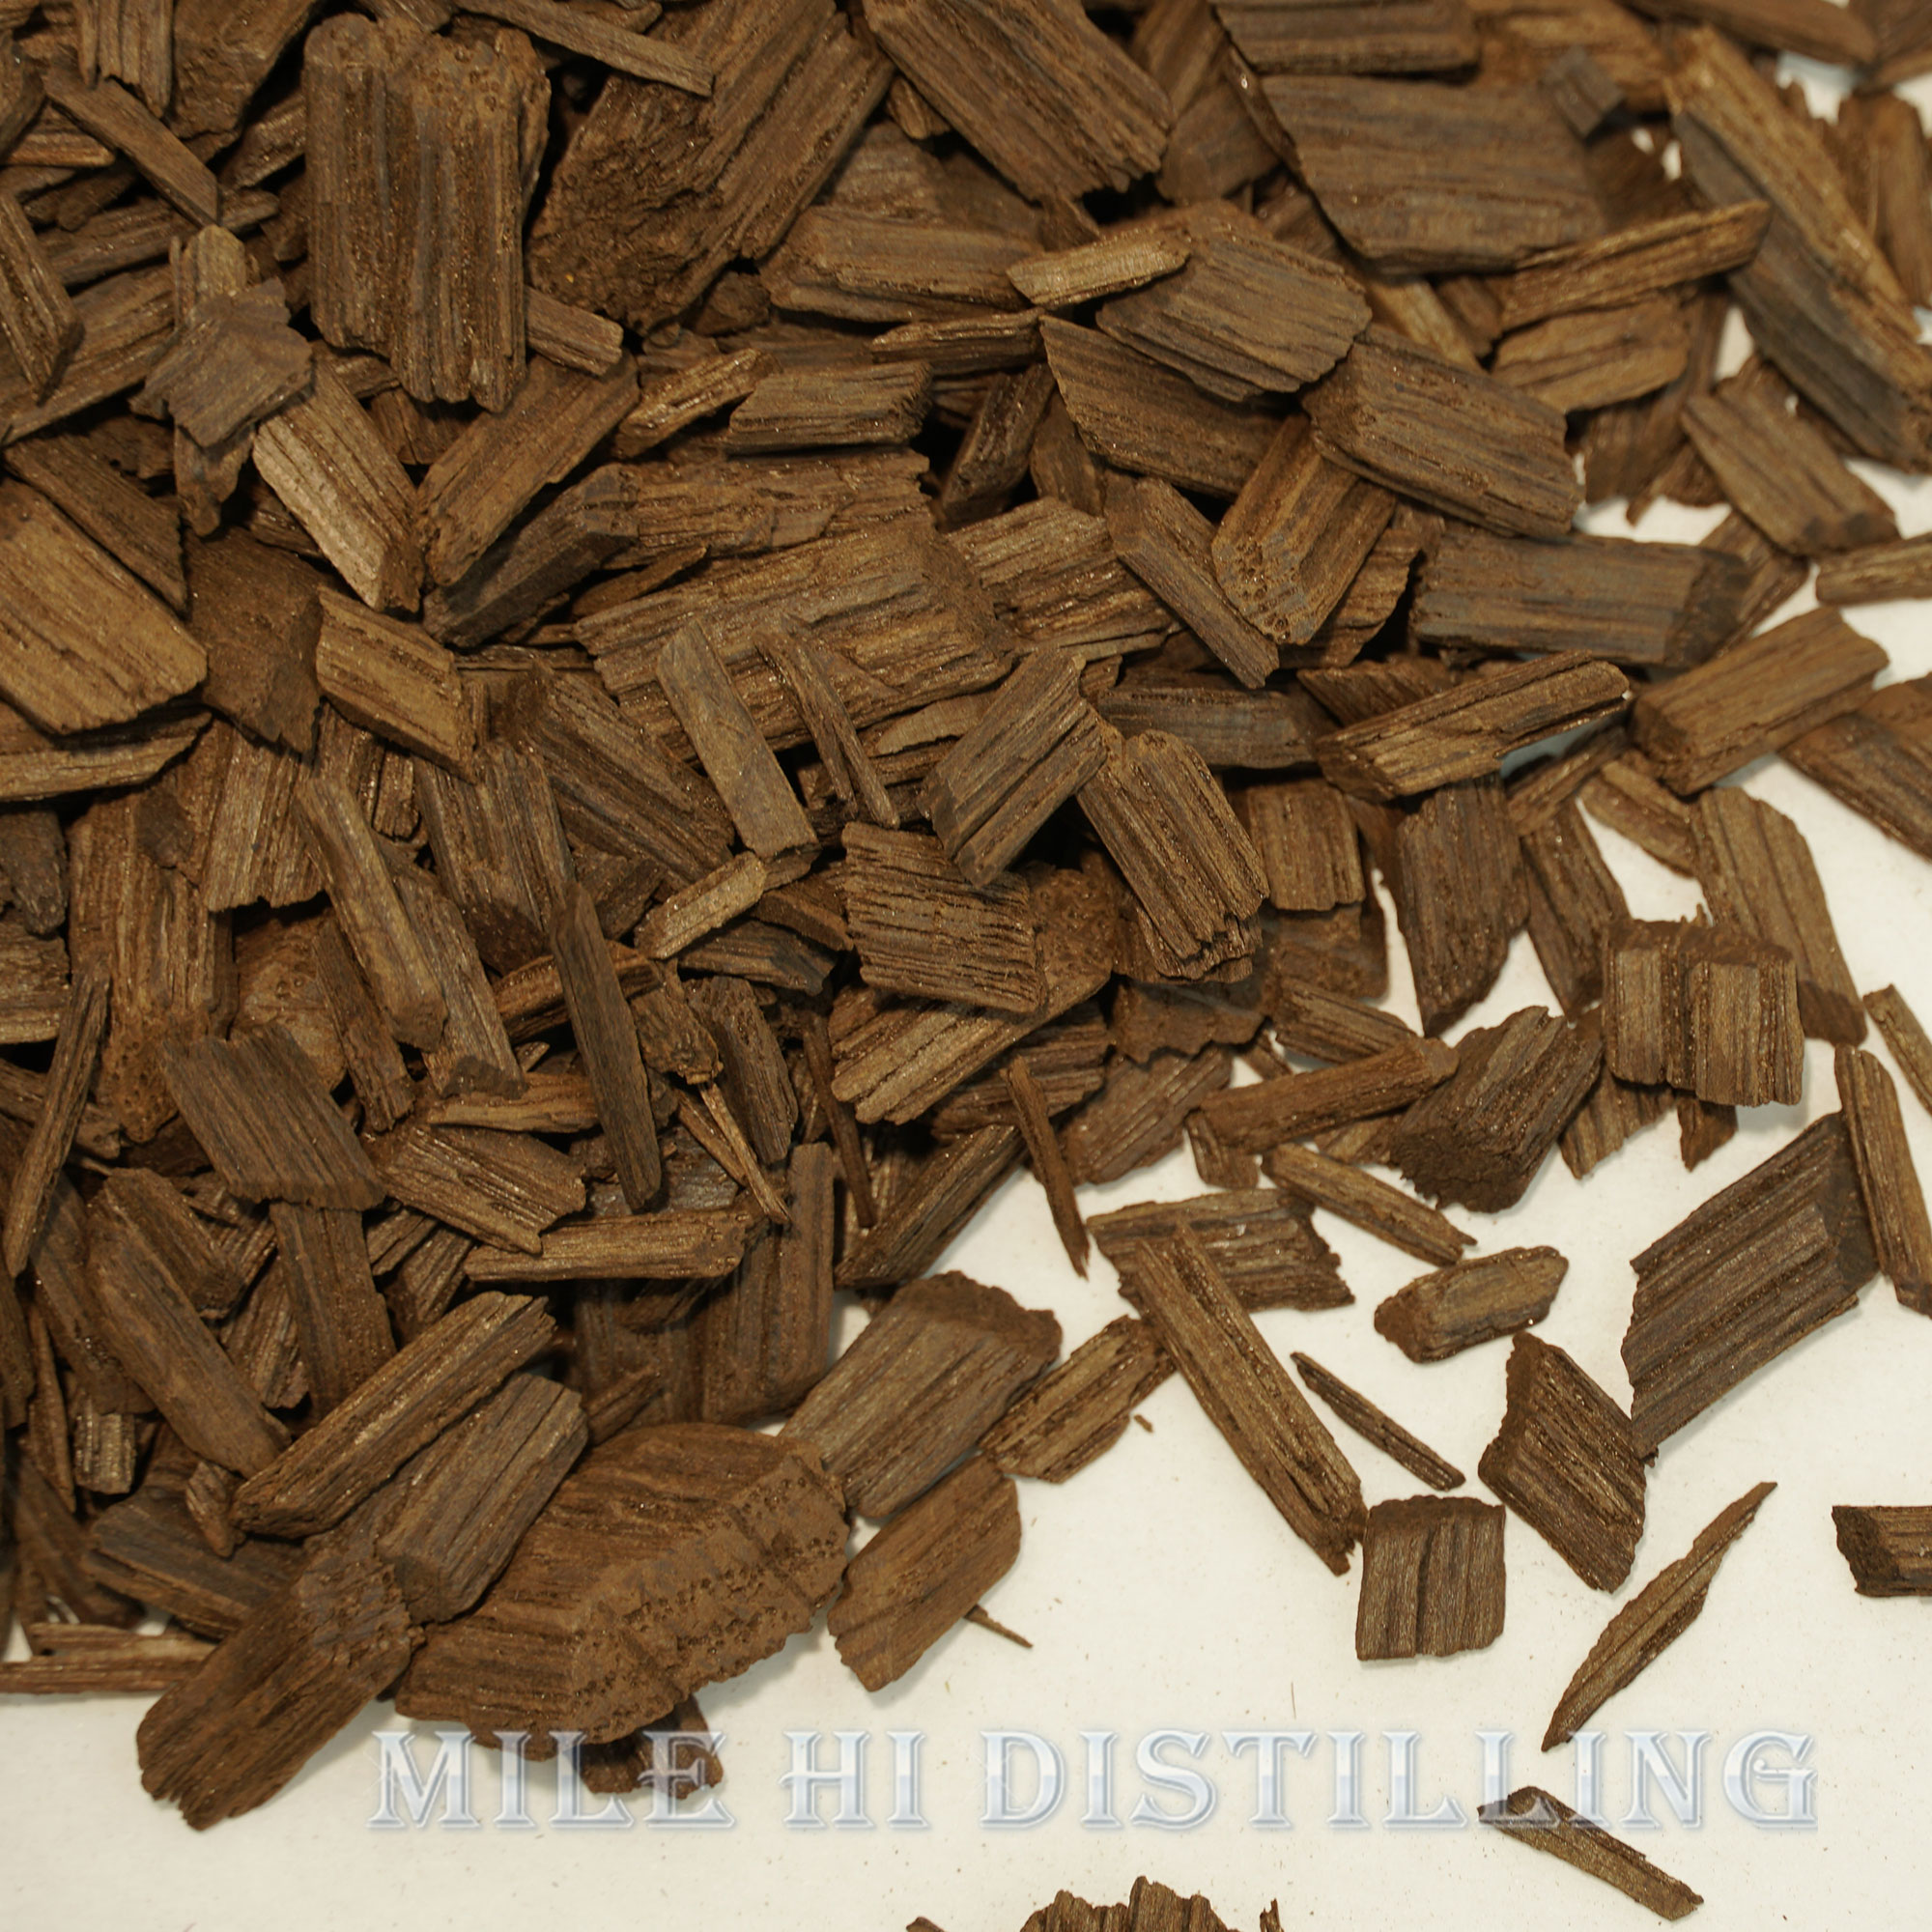 Dark Toasted Oak Chips 2 Distilling Supplies